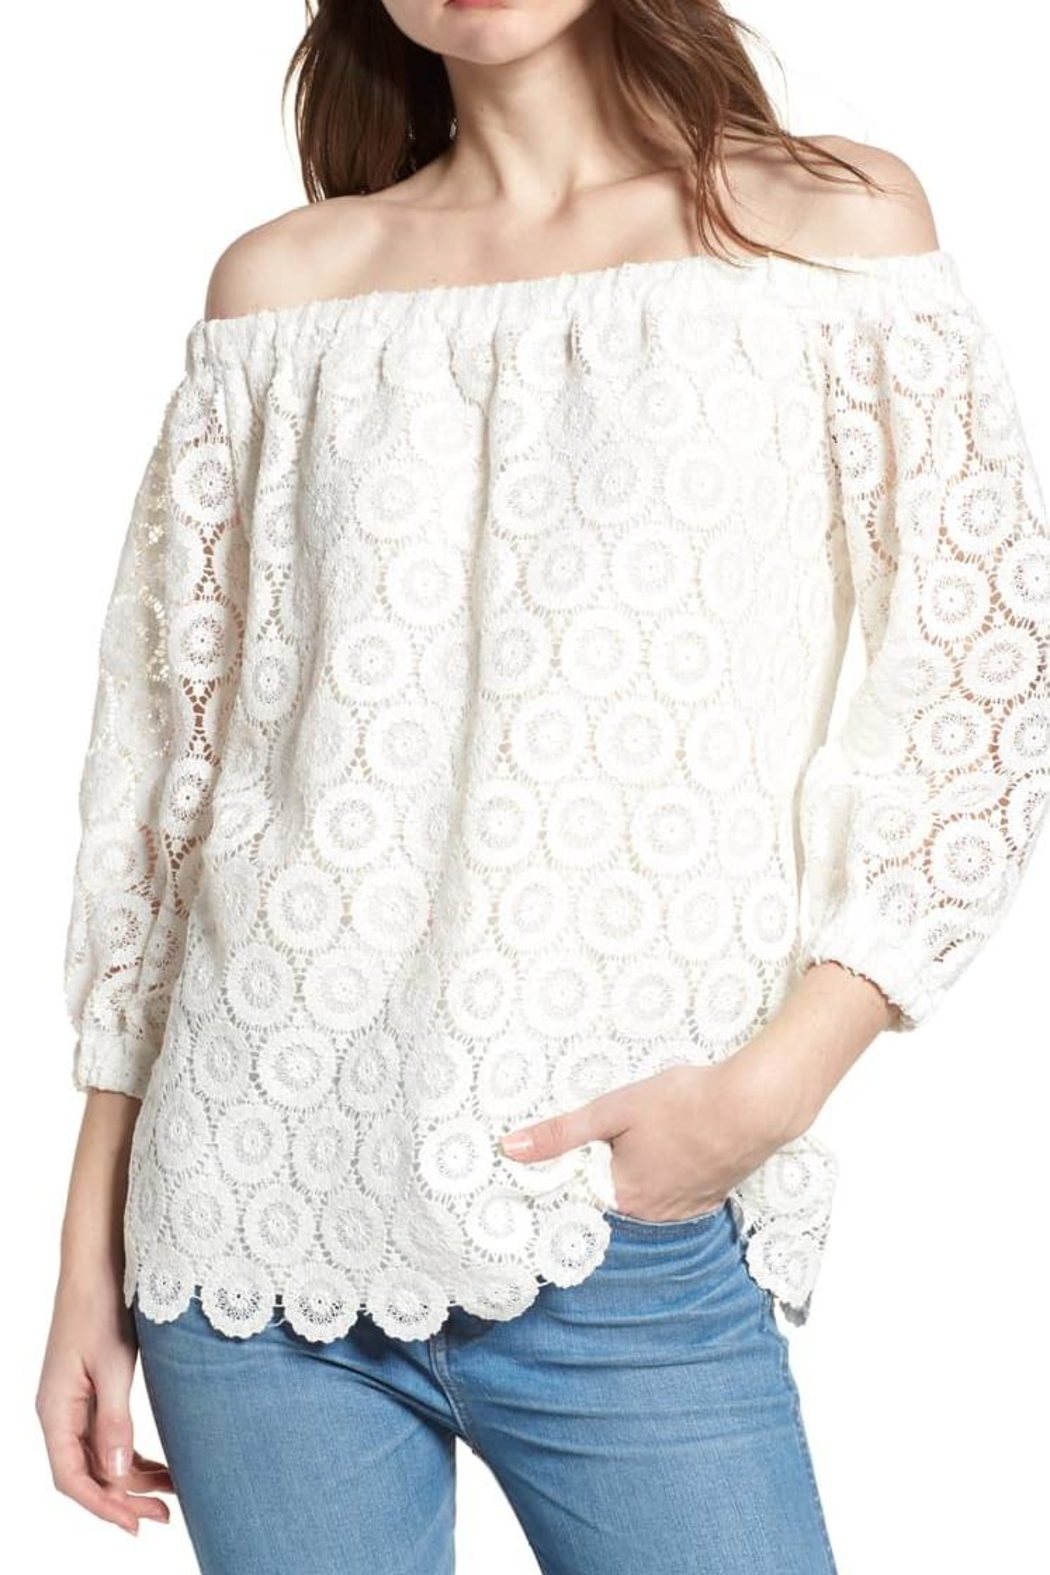 Bishop + Young Lace Off-The-Shoulder Top - Main Image